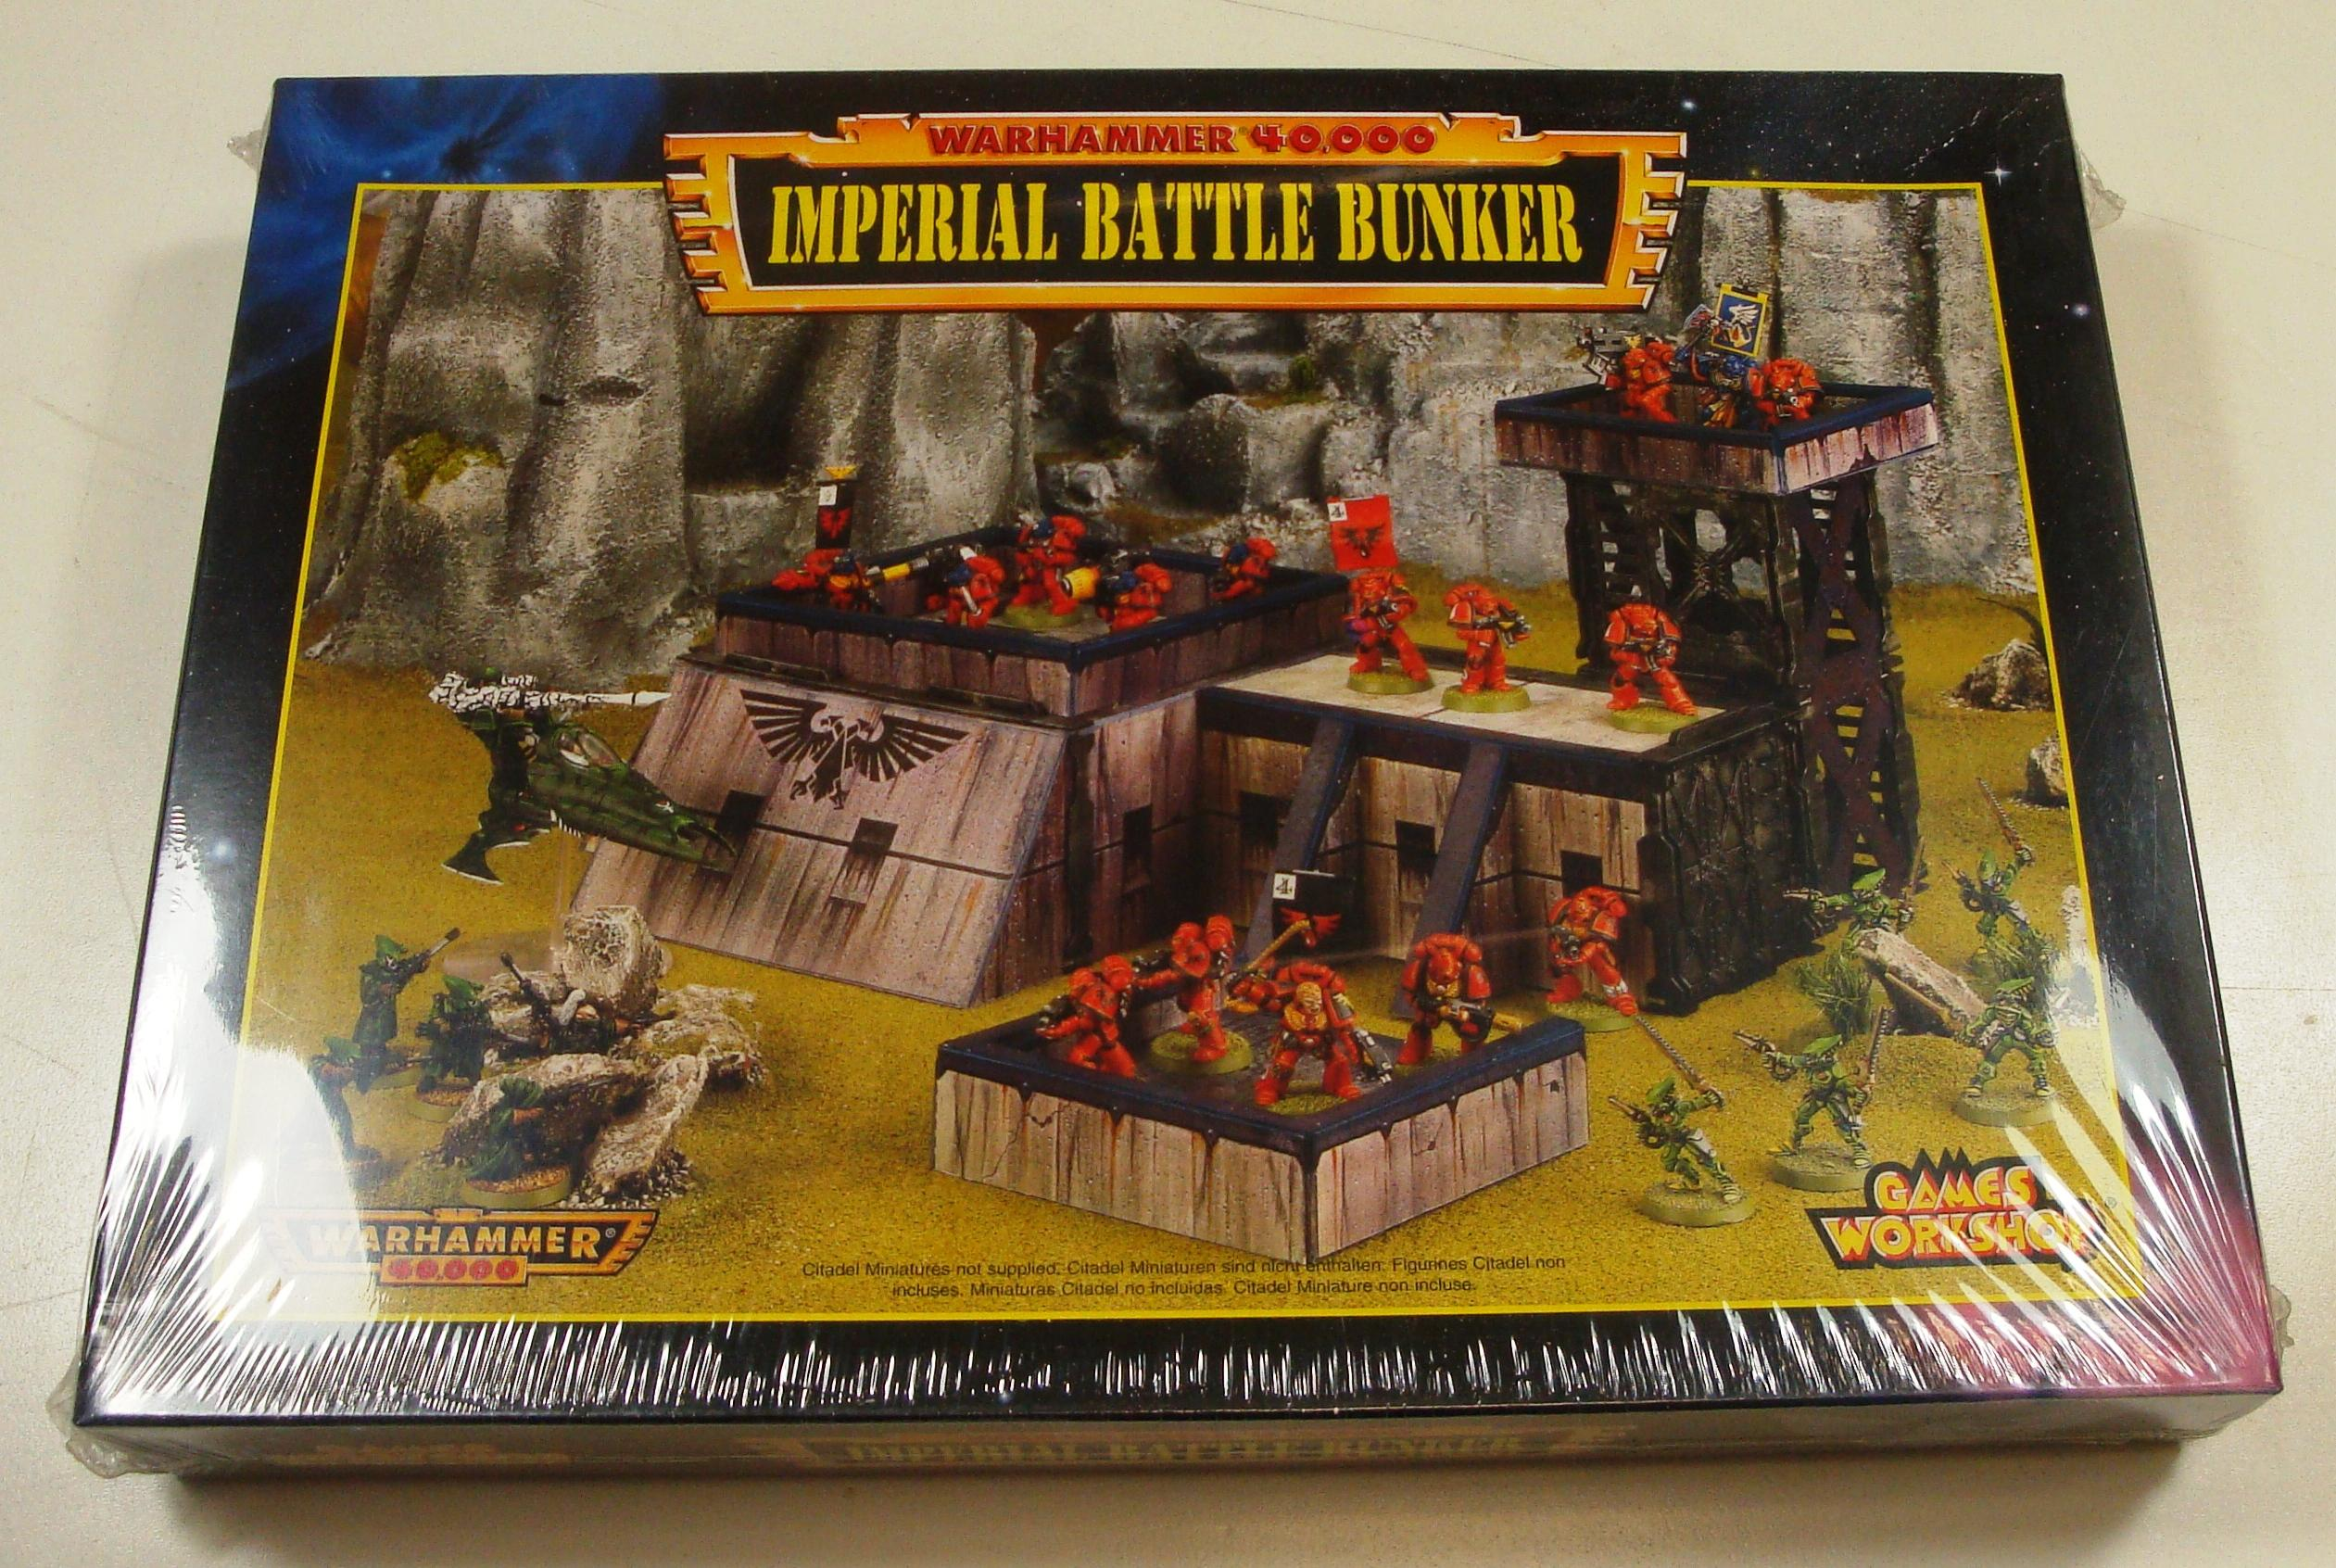 Adeptus Astartes, Astartes, Battle Bunker, Blood Angels, Buildings, Dreadnought, Imperial, Imperial Fists, Imperial Guard, Predator, Razorback, Rhino, Rogue Trader, Sale, Space Marines, Wh40k Terrain, Whirlwind